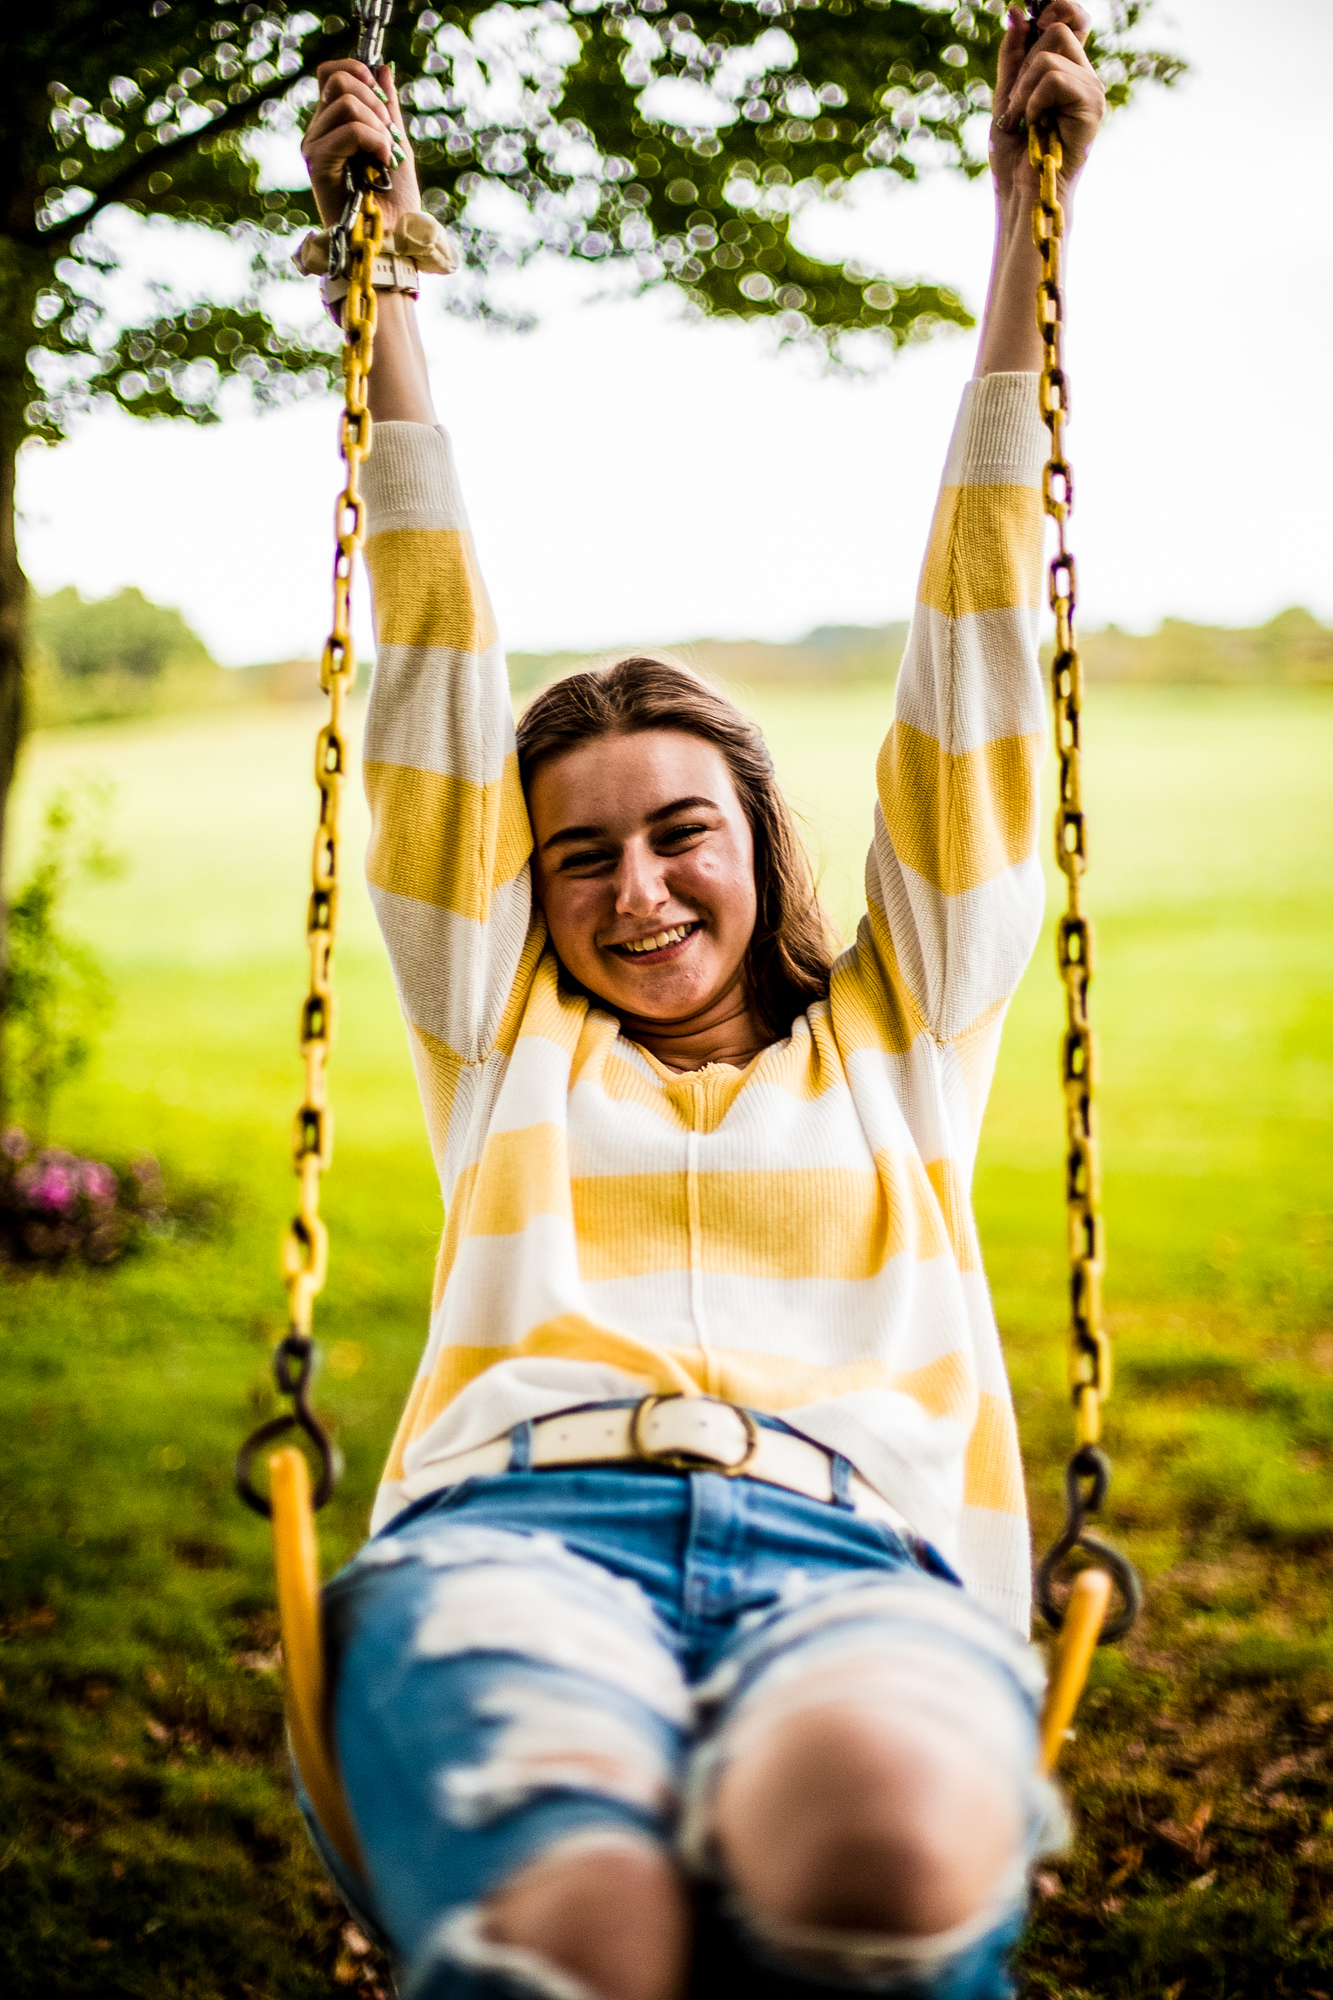 Laughing girl swinging on a swing at her family's farm in Union City, PA